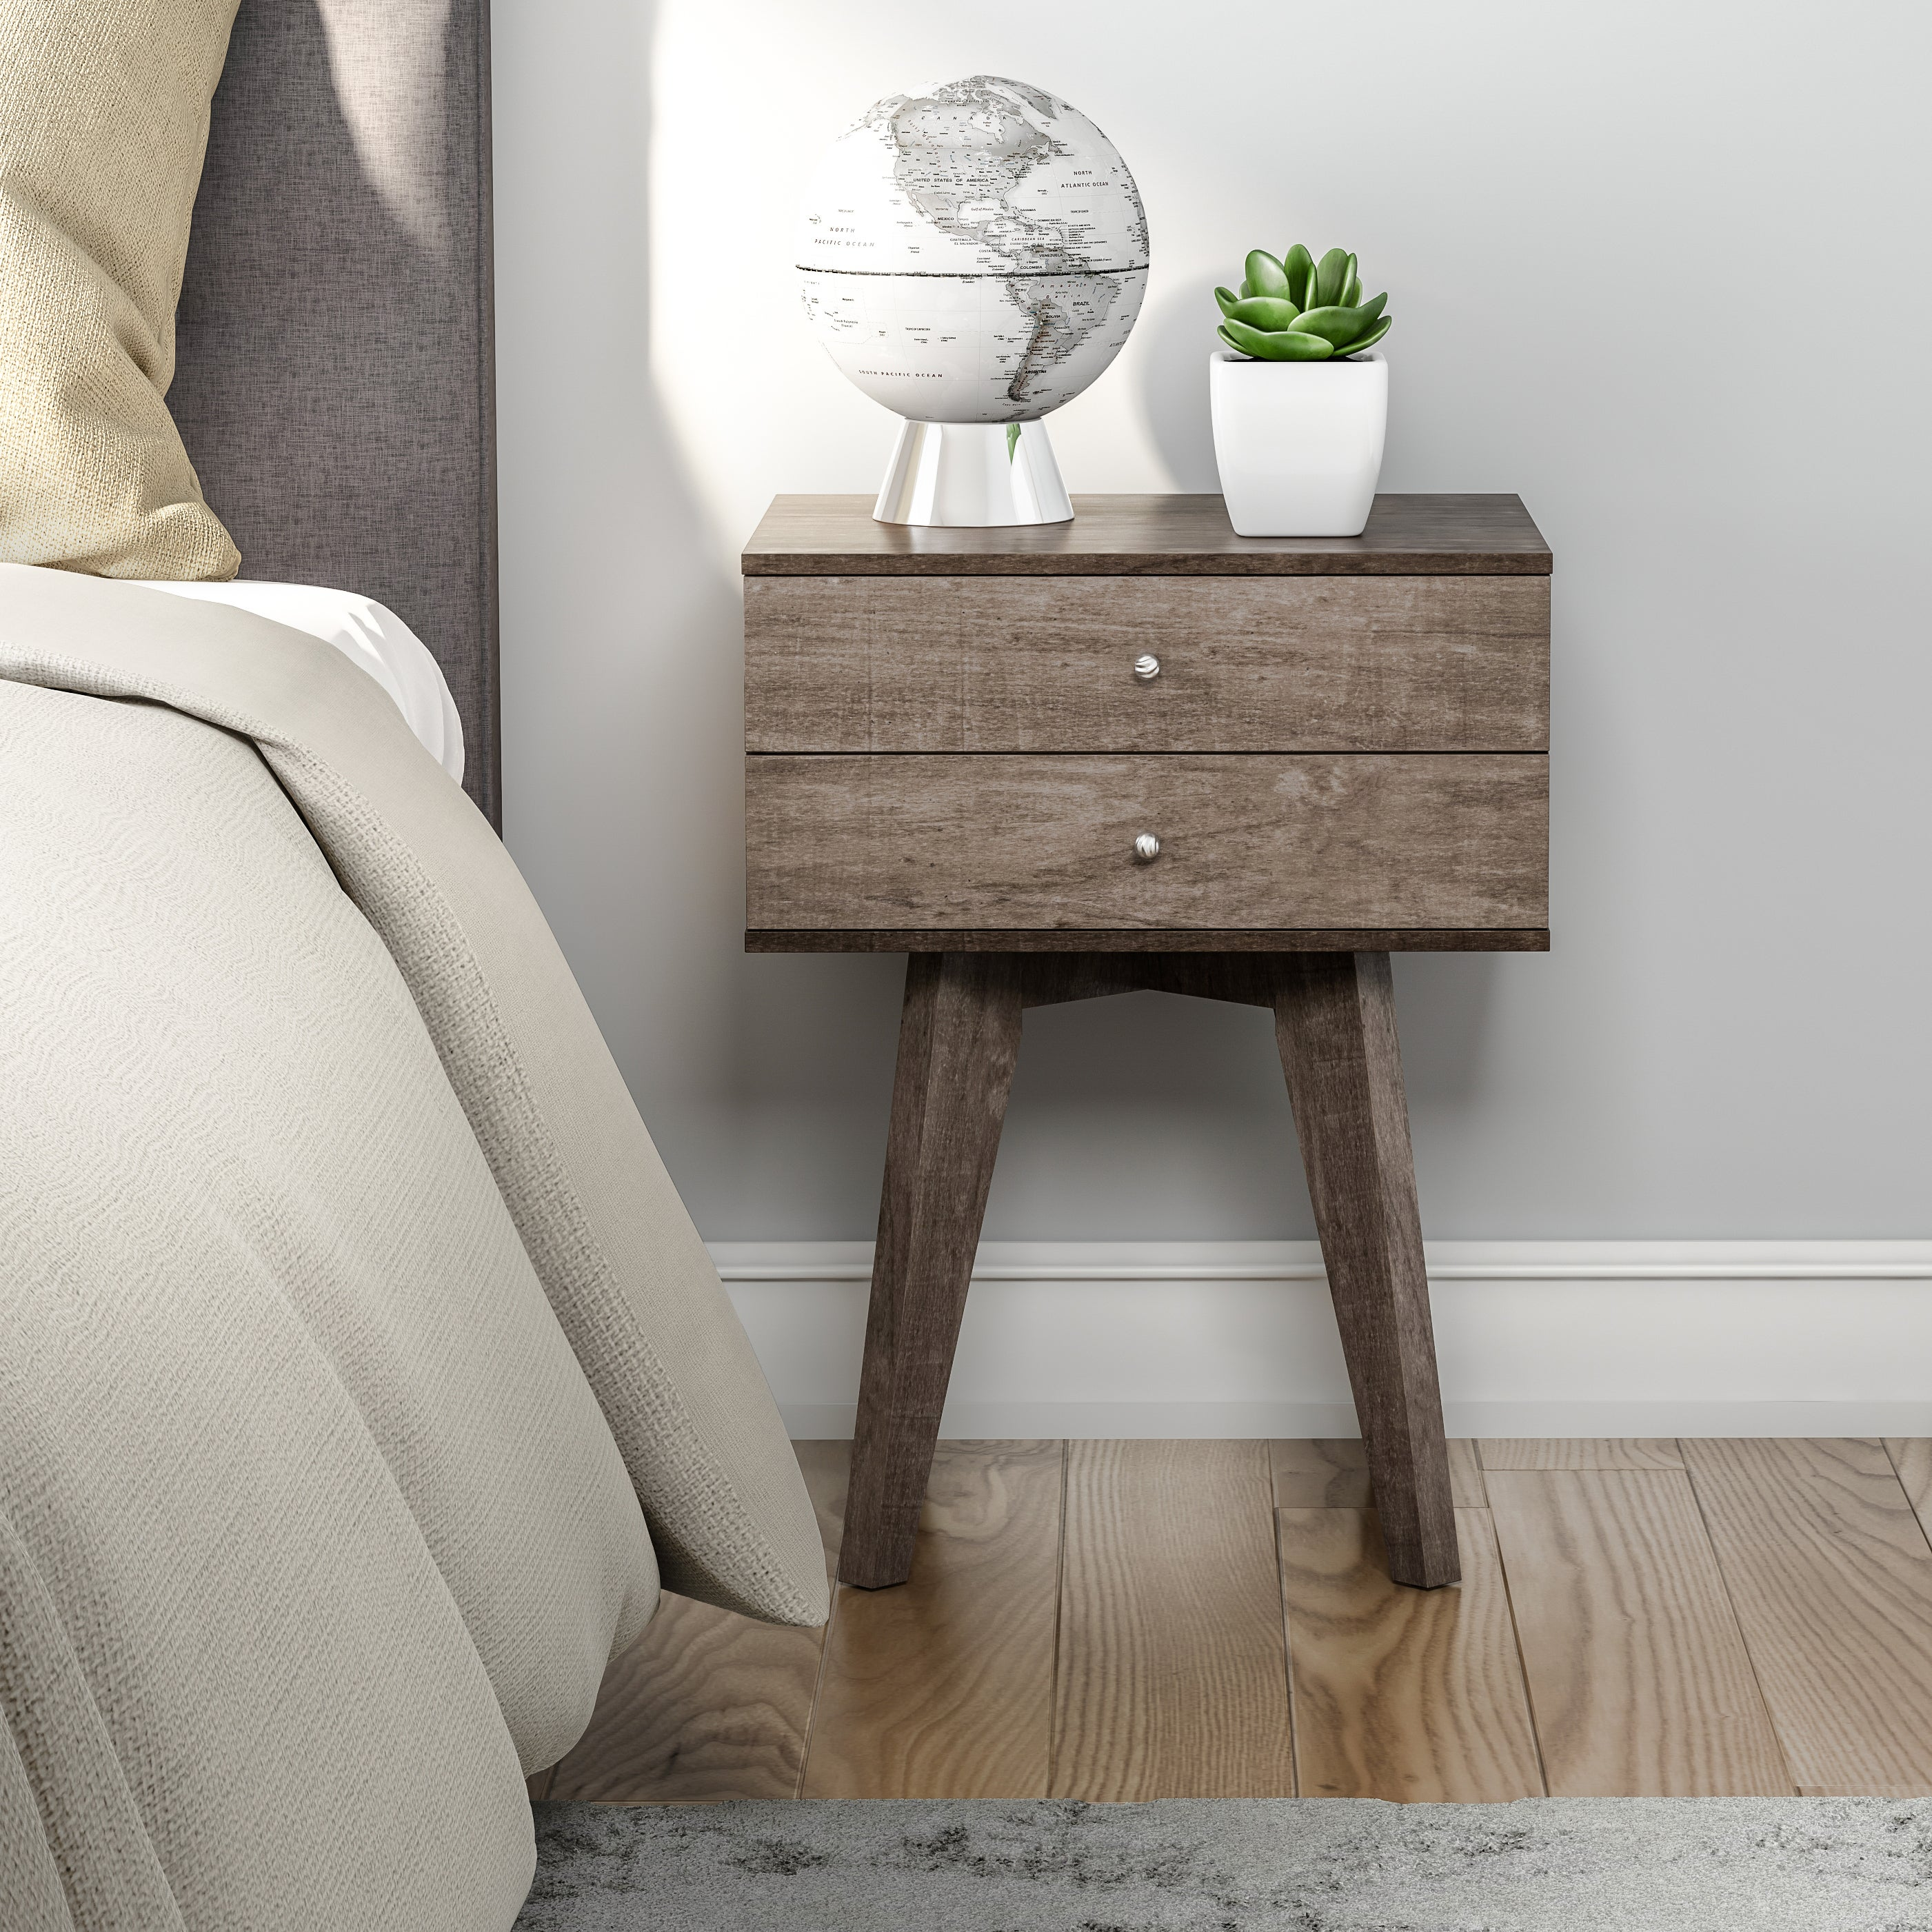 Beau Details About Small Bedside Table 2 Drawer Accent Wood Midcentury Modern  Nightstand Low